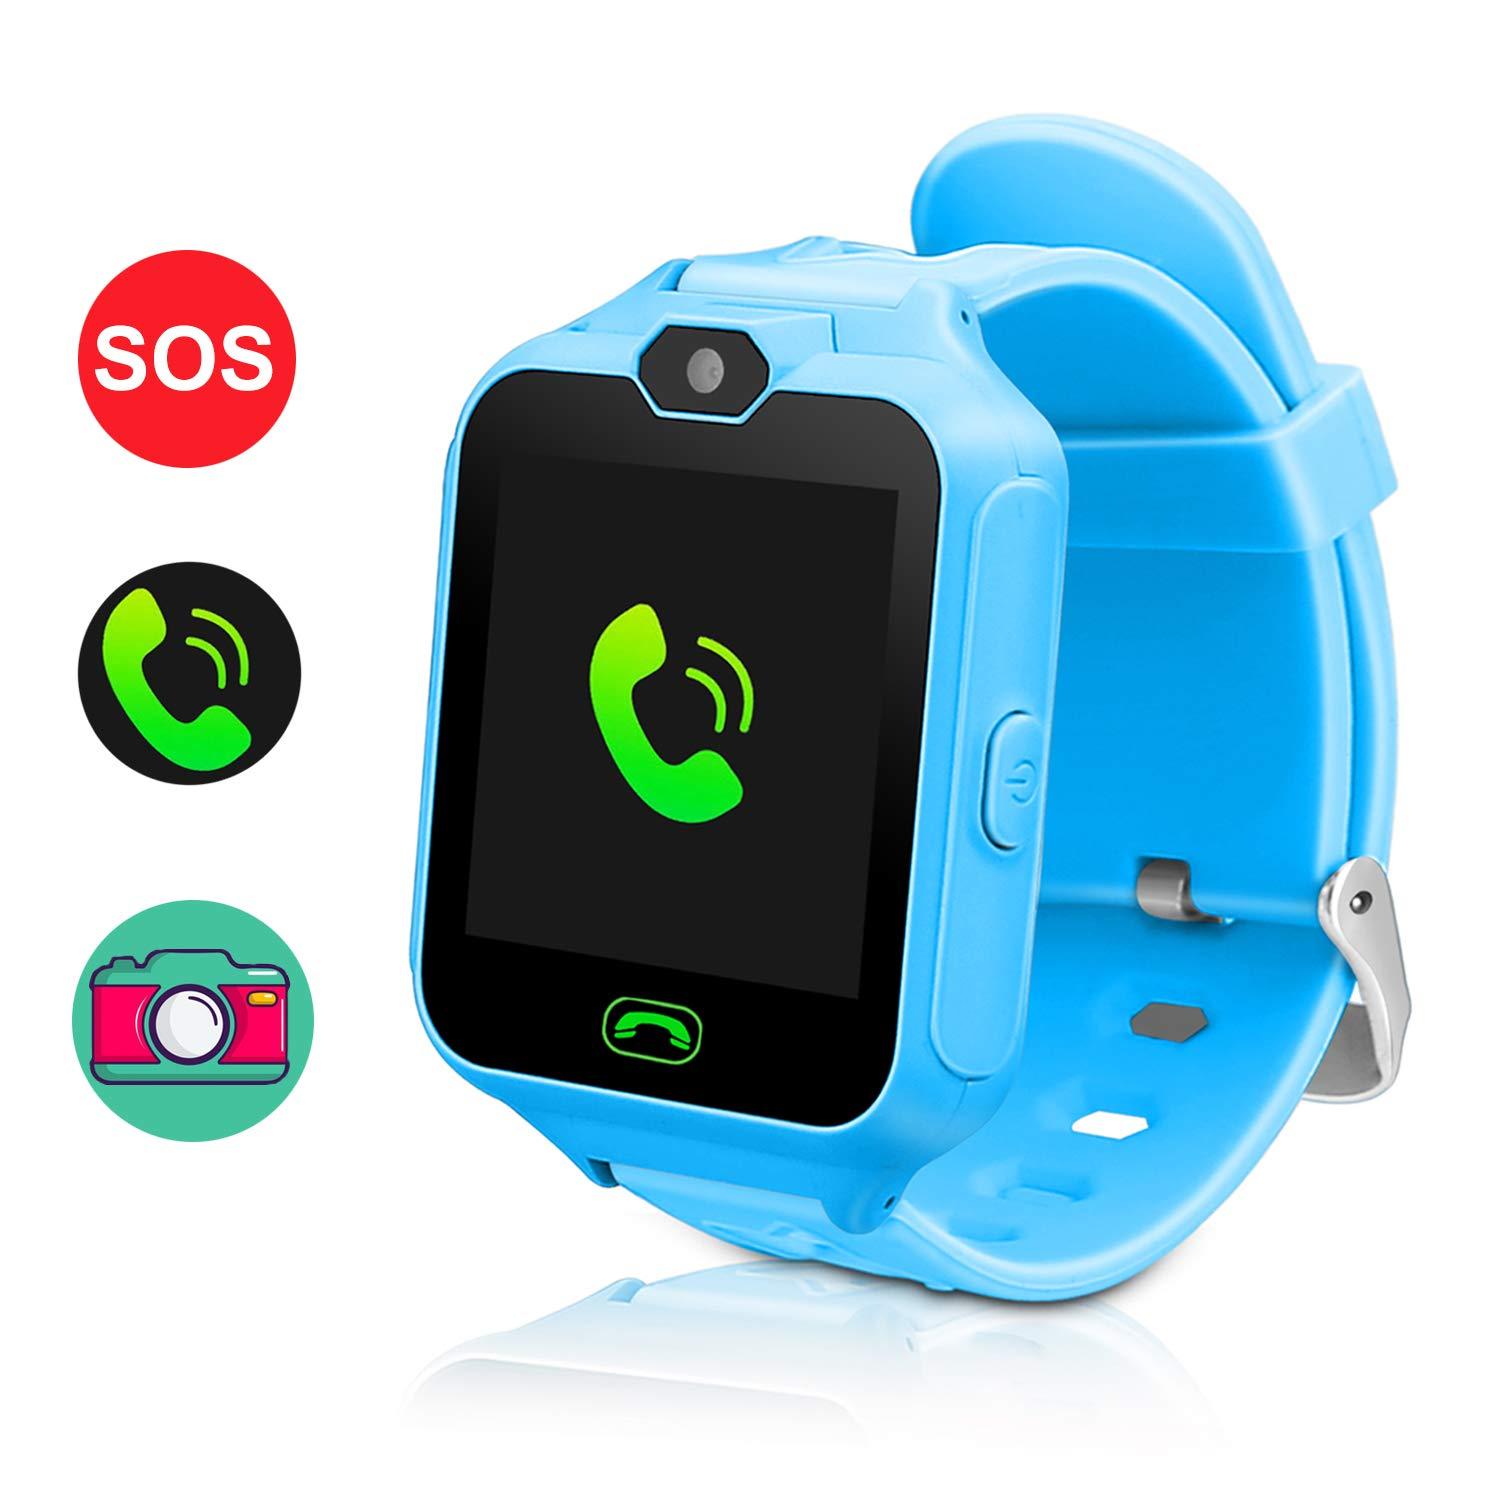 Smart Watch for Kids,Smartwatches for Girls Boys Phone Watch Camera SOS Alarm Clock, Smart Watch for kids Girls Boys Birthday Great Gifts(Blue)